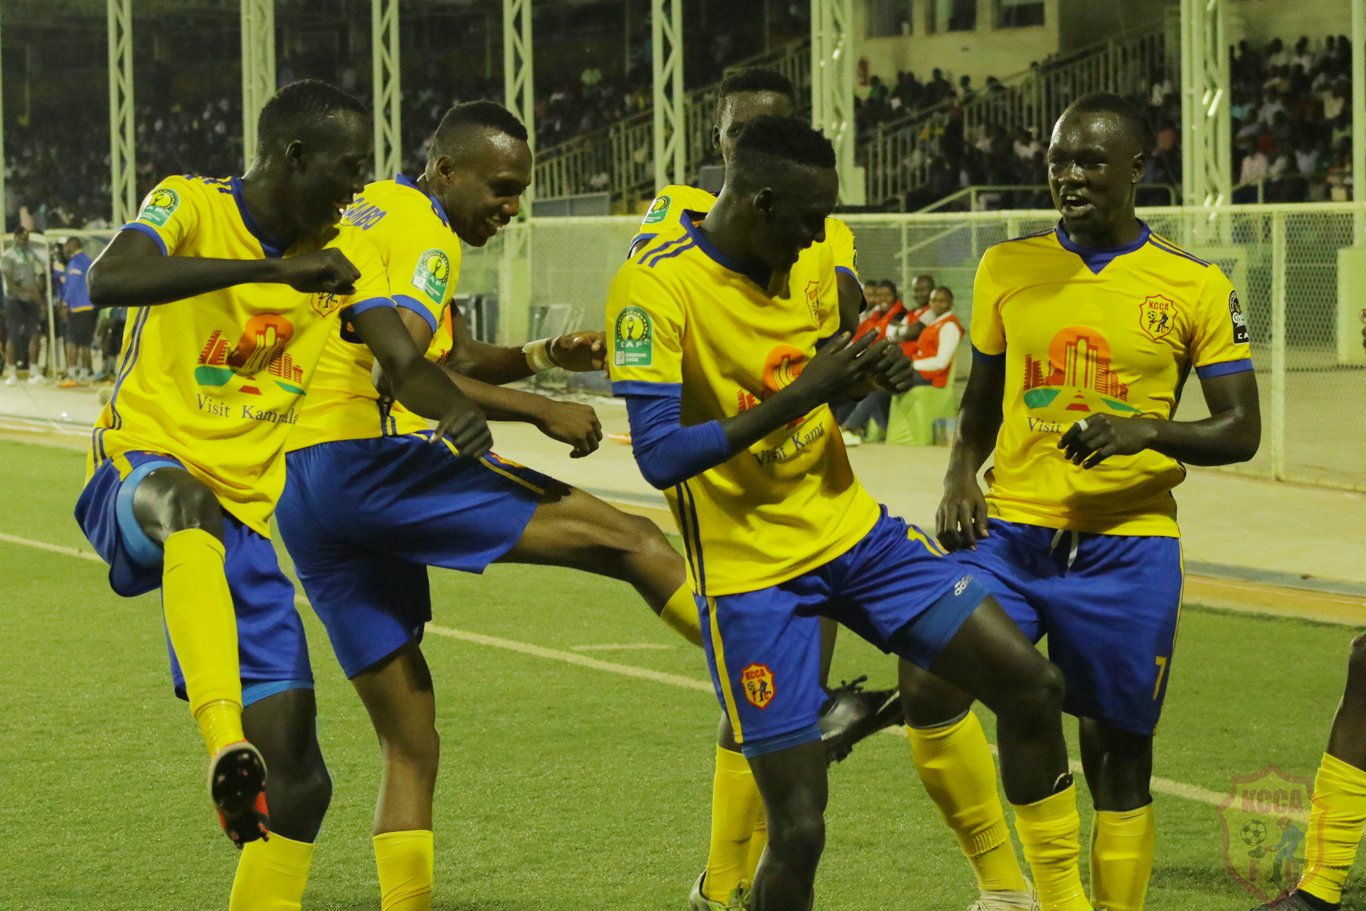 KCCA FC will represent Uganda in the CAF Champions League 2019/2020. (PHOTOS/File)